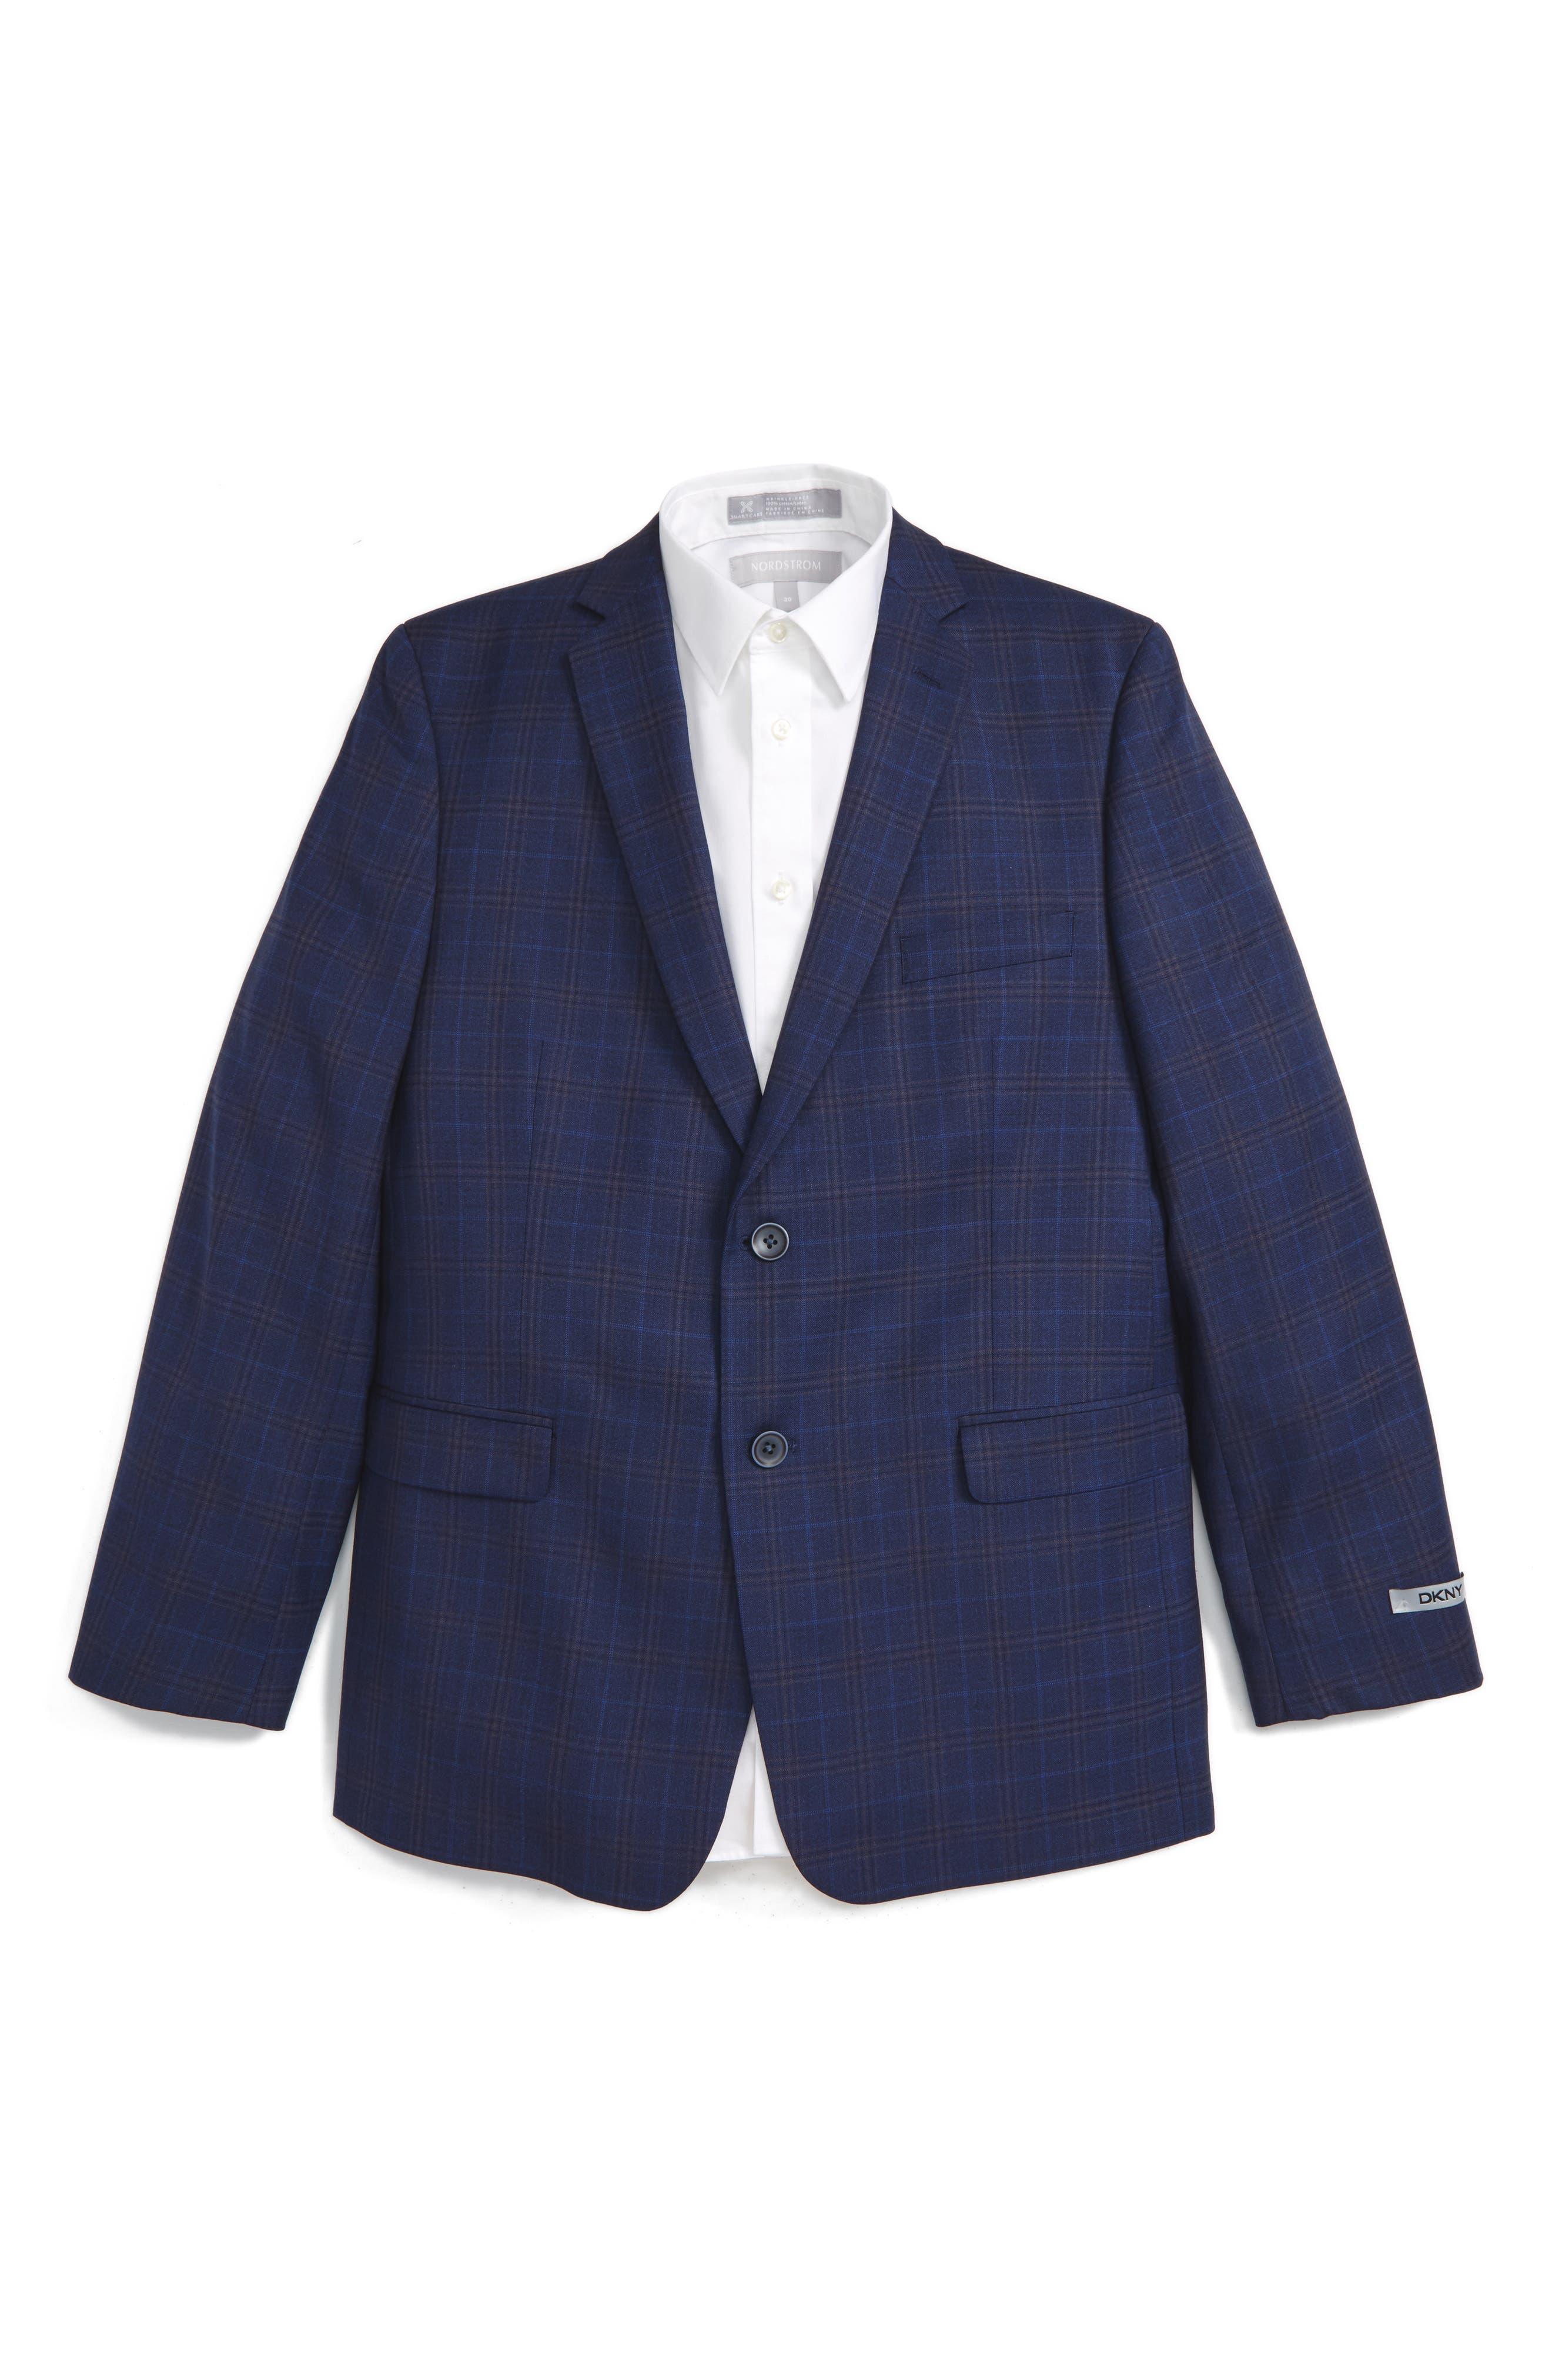 DKNY Check Wool Blazer